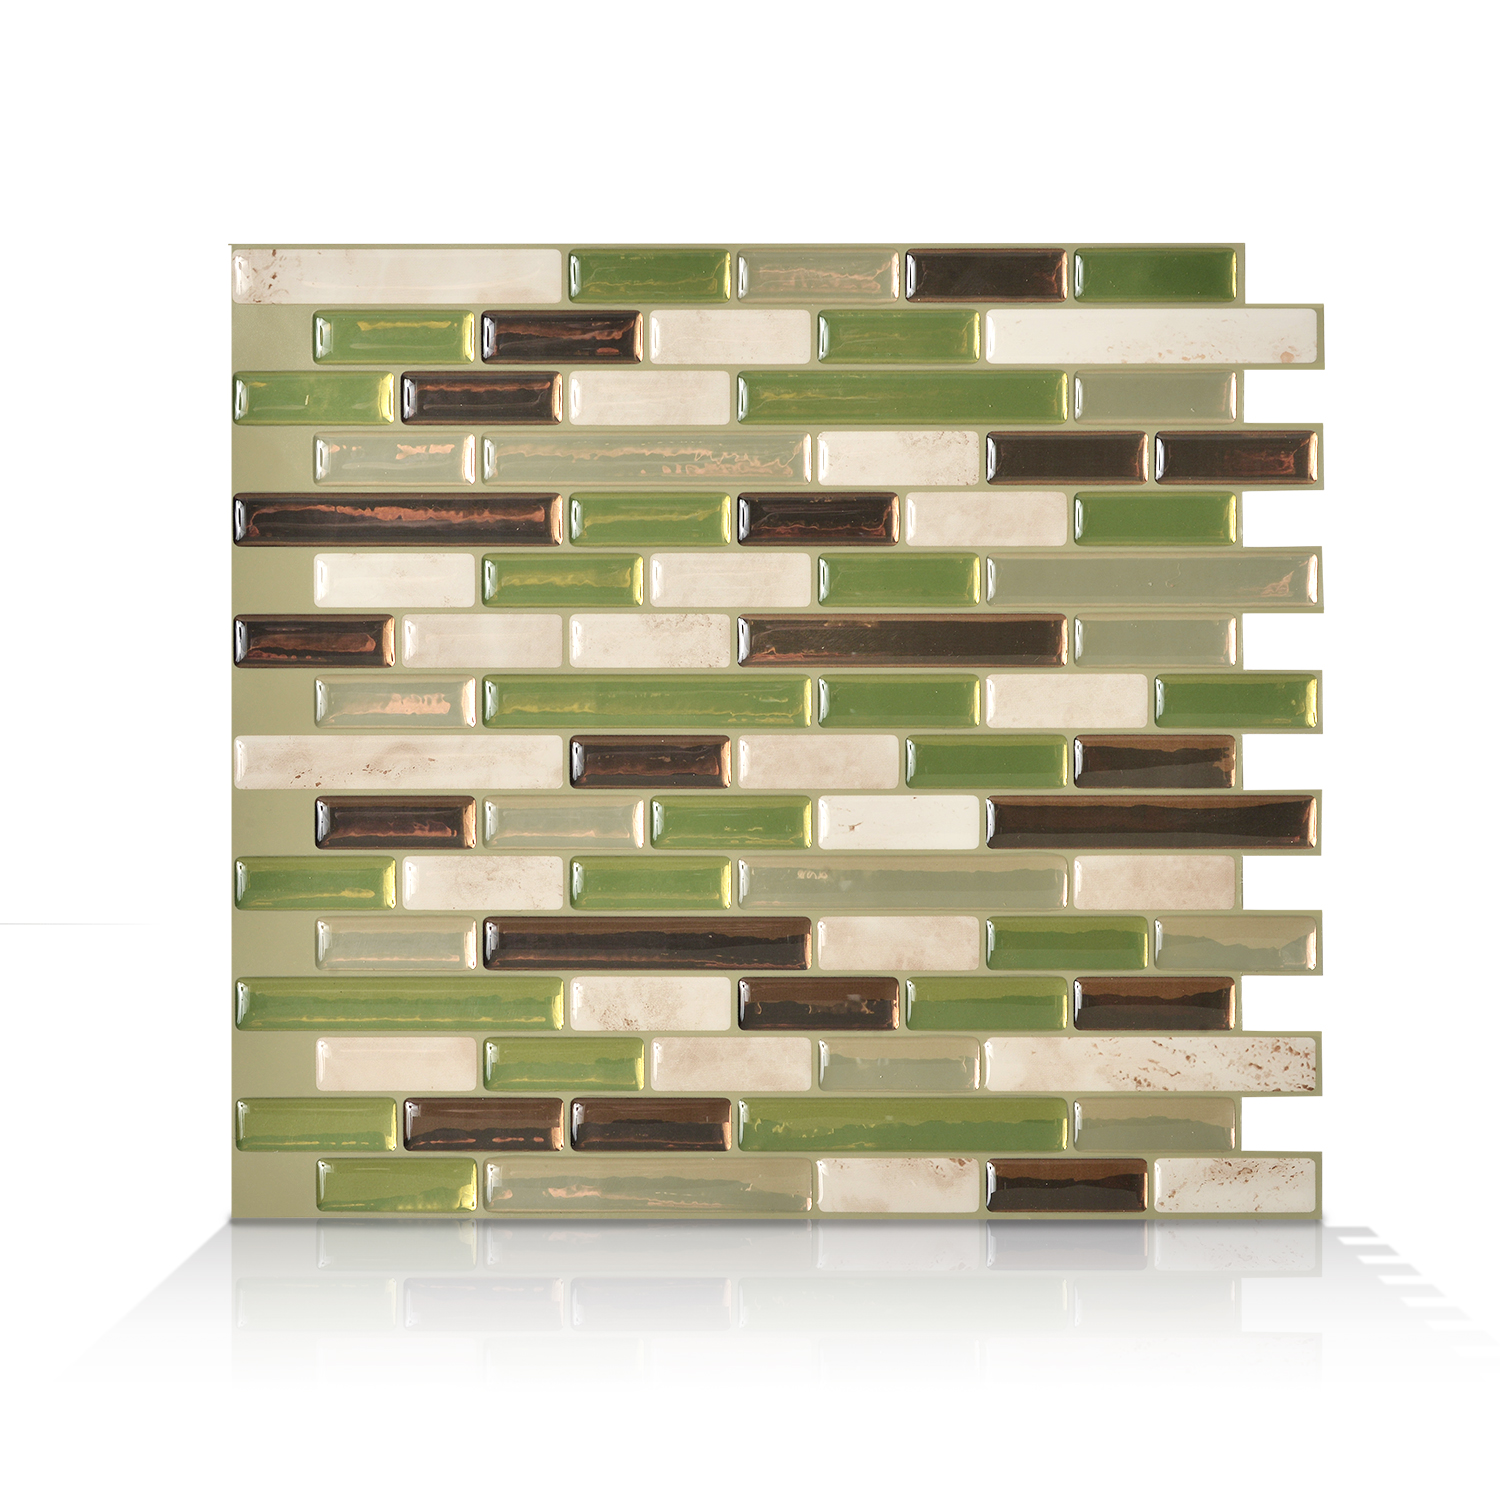 Smart Tiles 10.20 in x 9.10 in Peel and Stick Self-Adhesive Mosaic Backsplash Wall Tile - Muretto Eco (each)